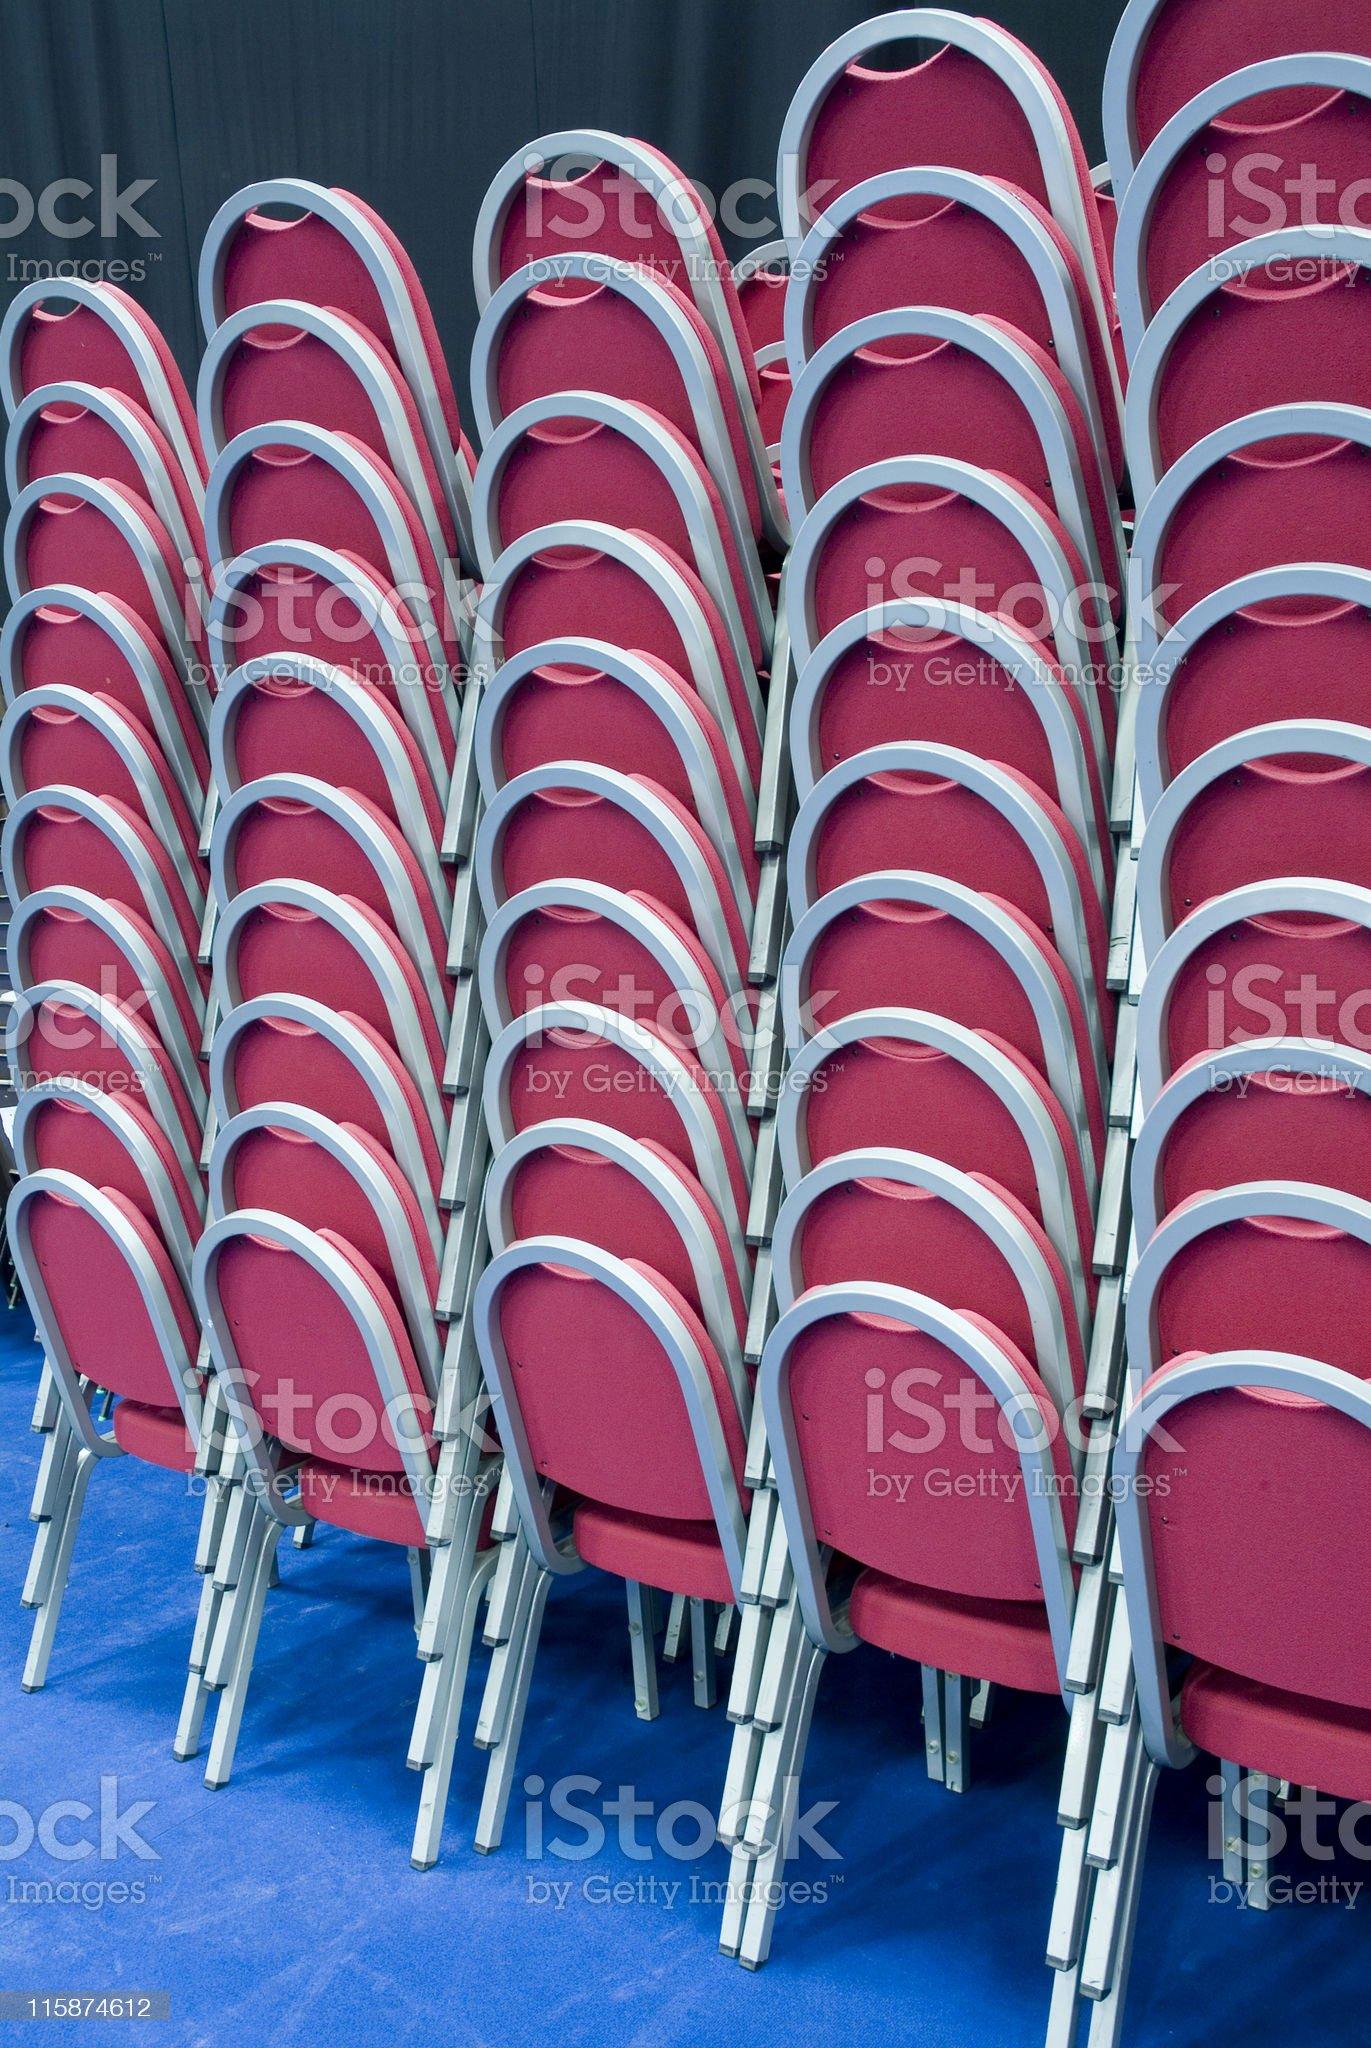 Stacked seating at a venue royalty-free stock photo